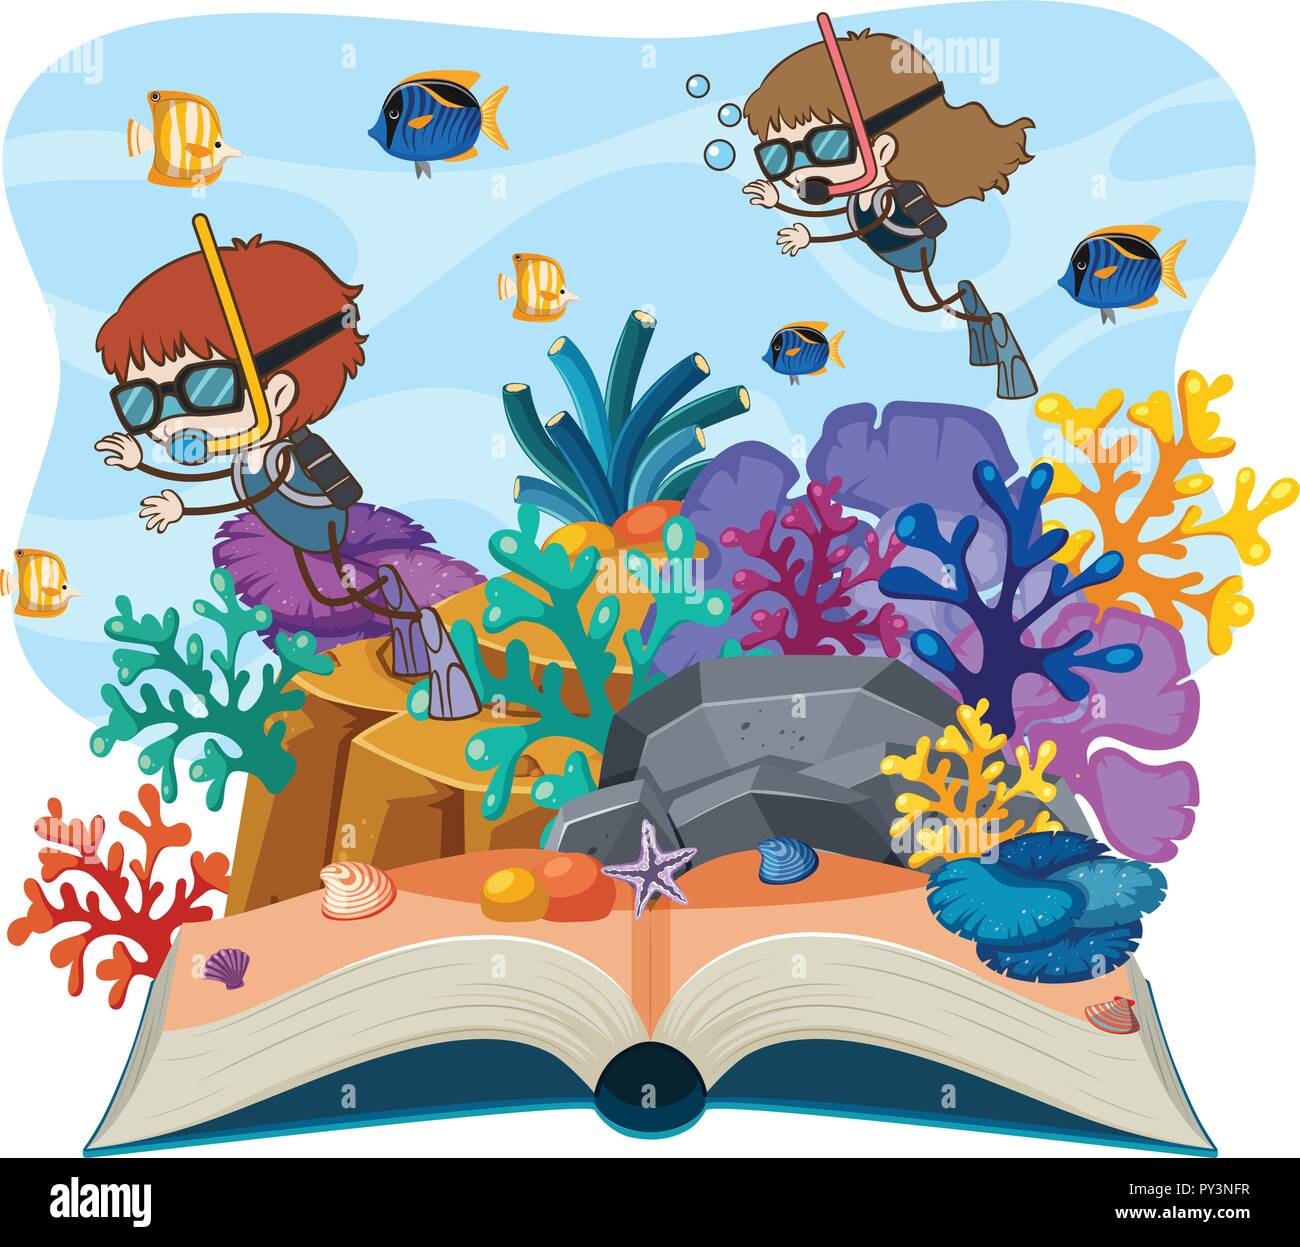 A diving open book illustration - Stock Image